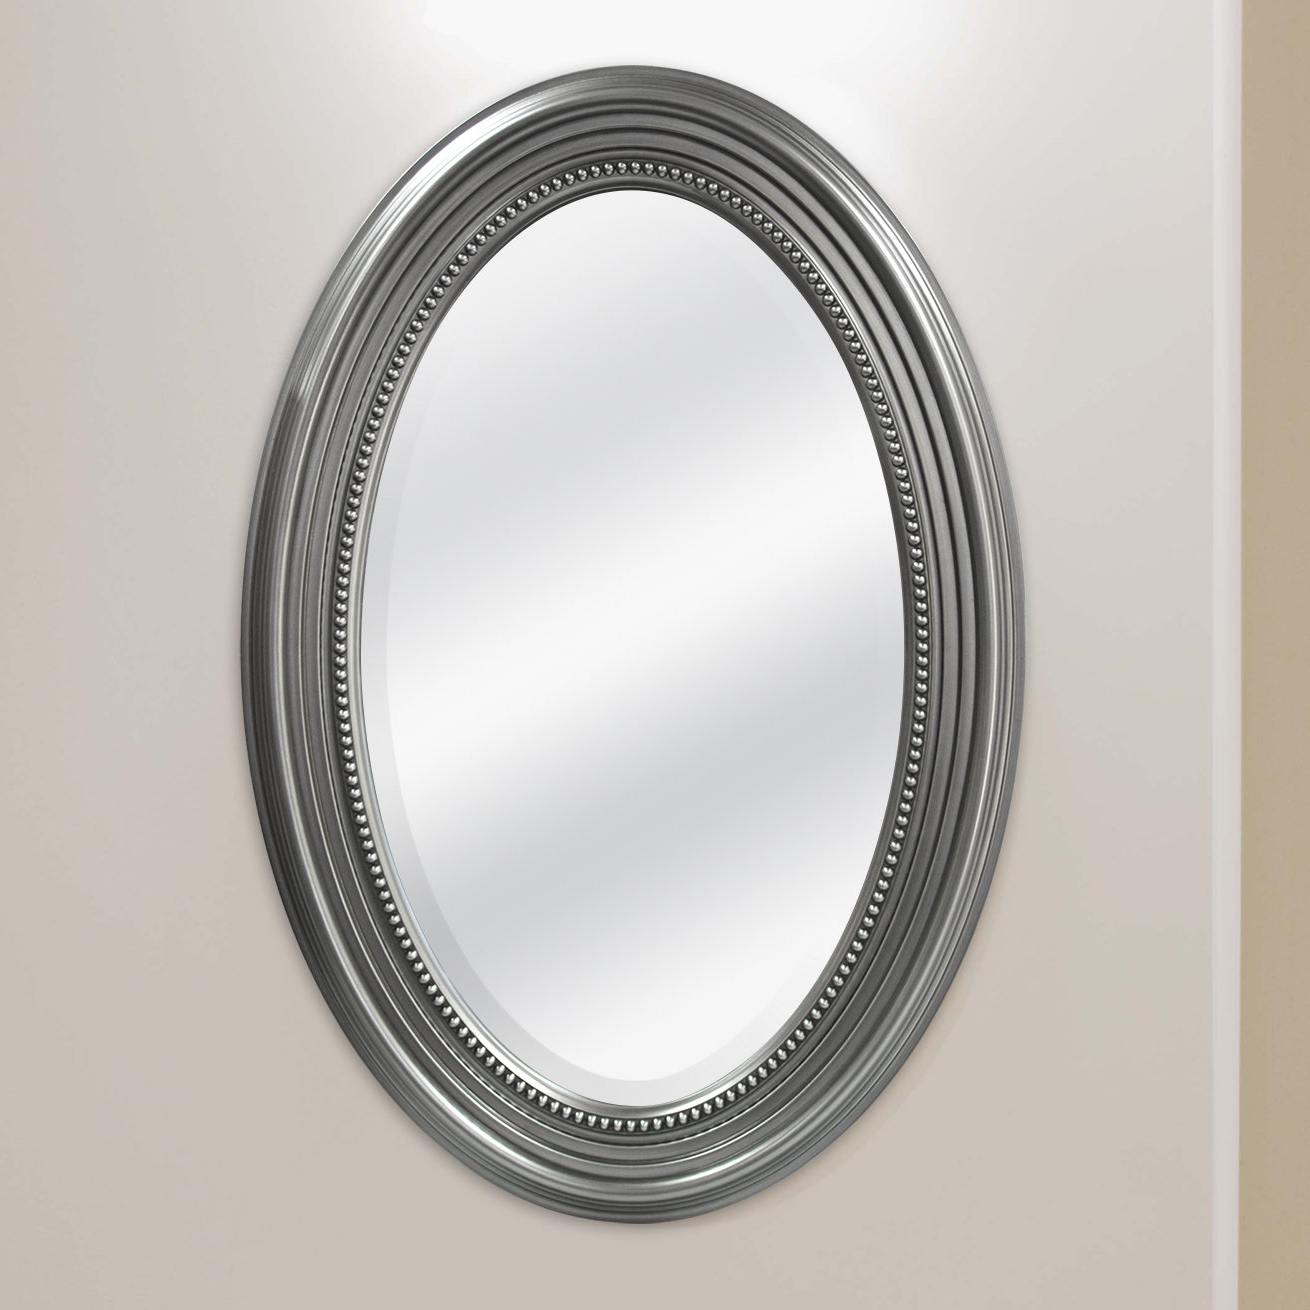 Beaded Accent Wall Mirrors Throughout Famous Beaded Accent Mirror (View 5 of 20)